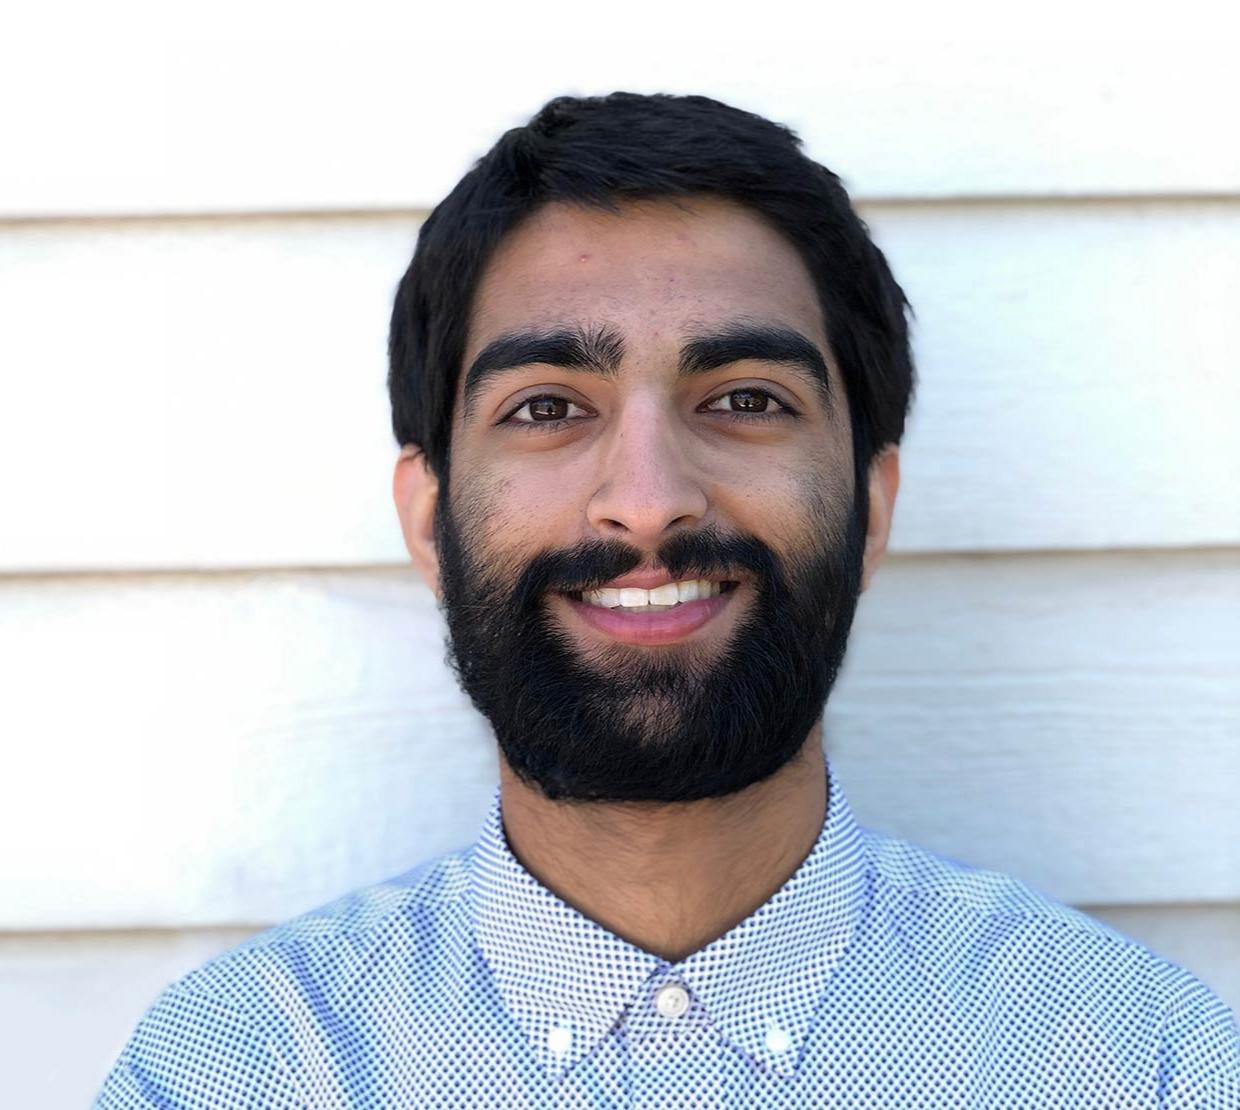 Mahtab Brar smiles in front of a background of white siding.